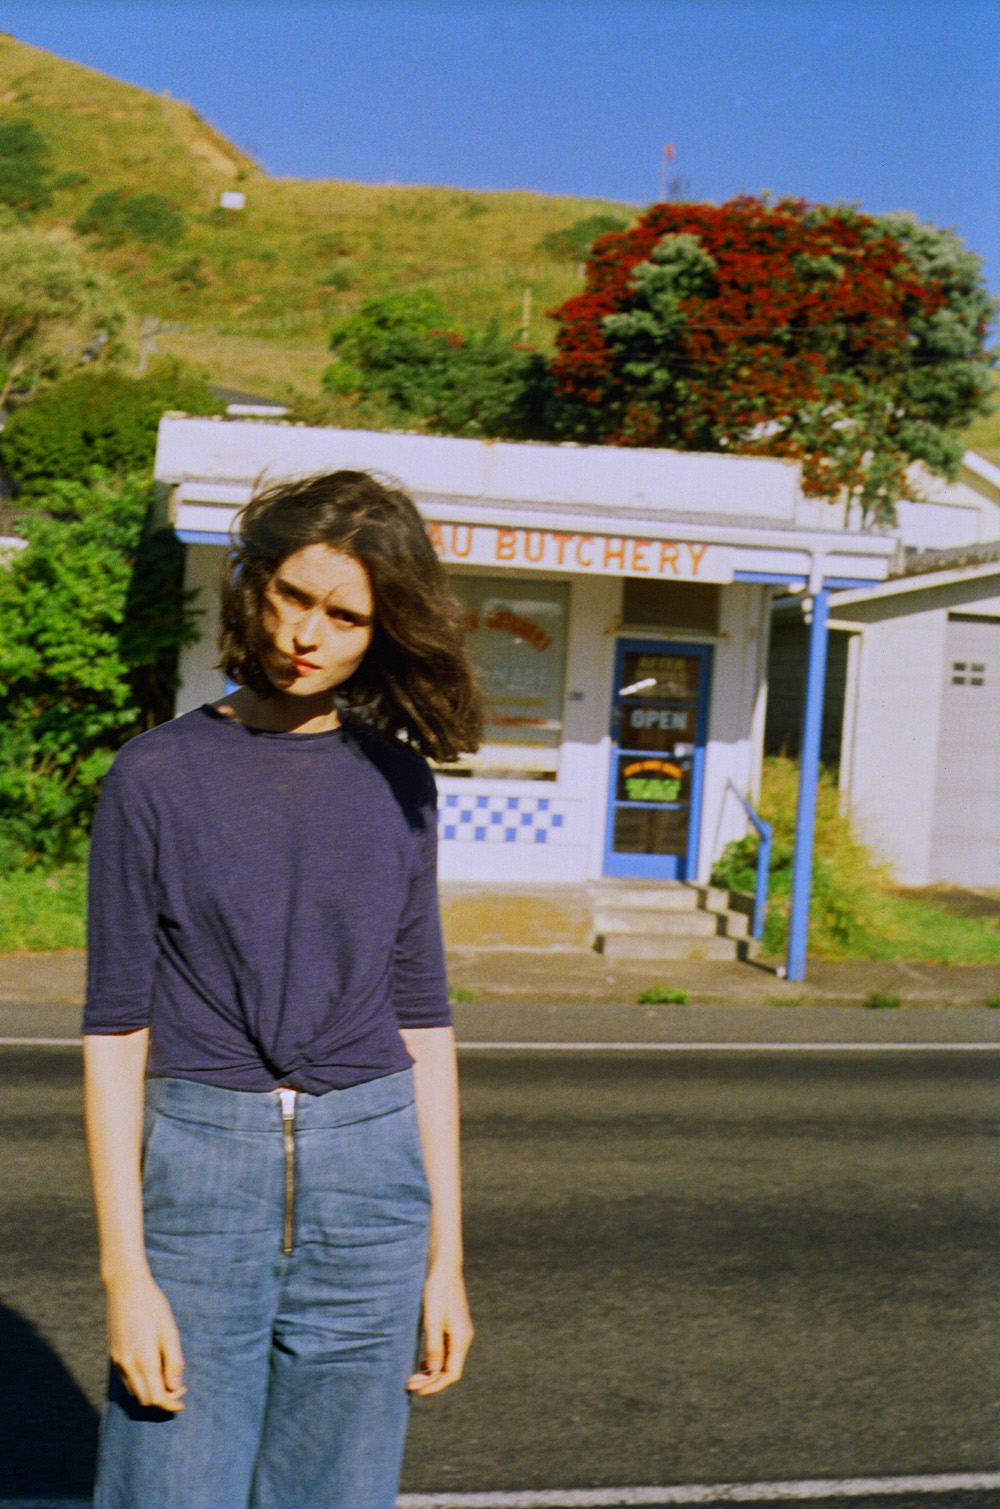 CHLOE CHILL TRAVEL Wearing Thursday Sunday top and Vale denim jeans outside Mokau Butcher